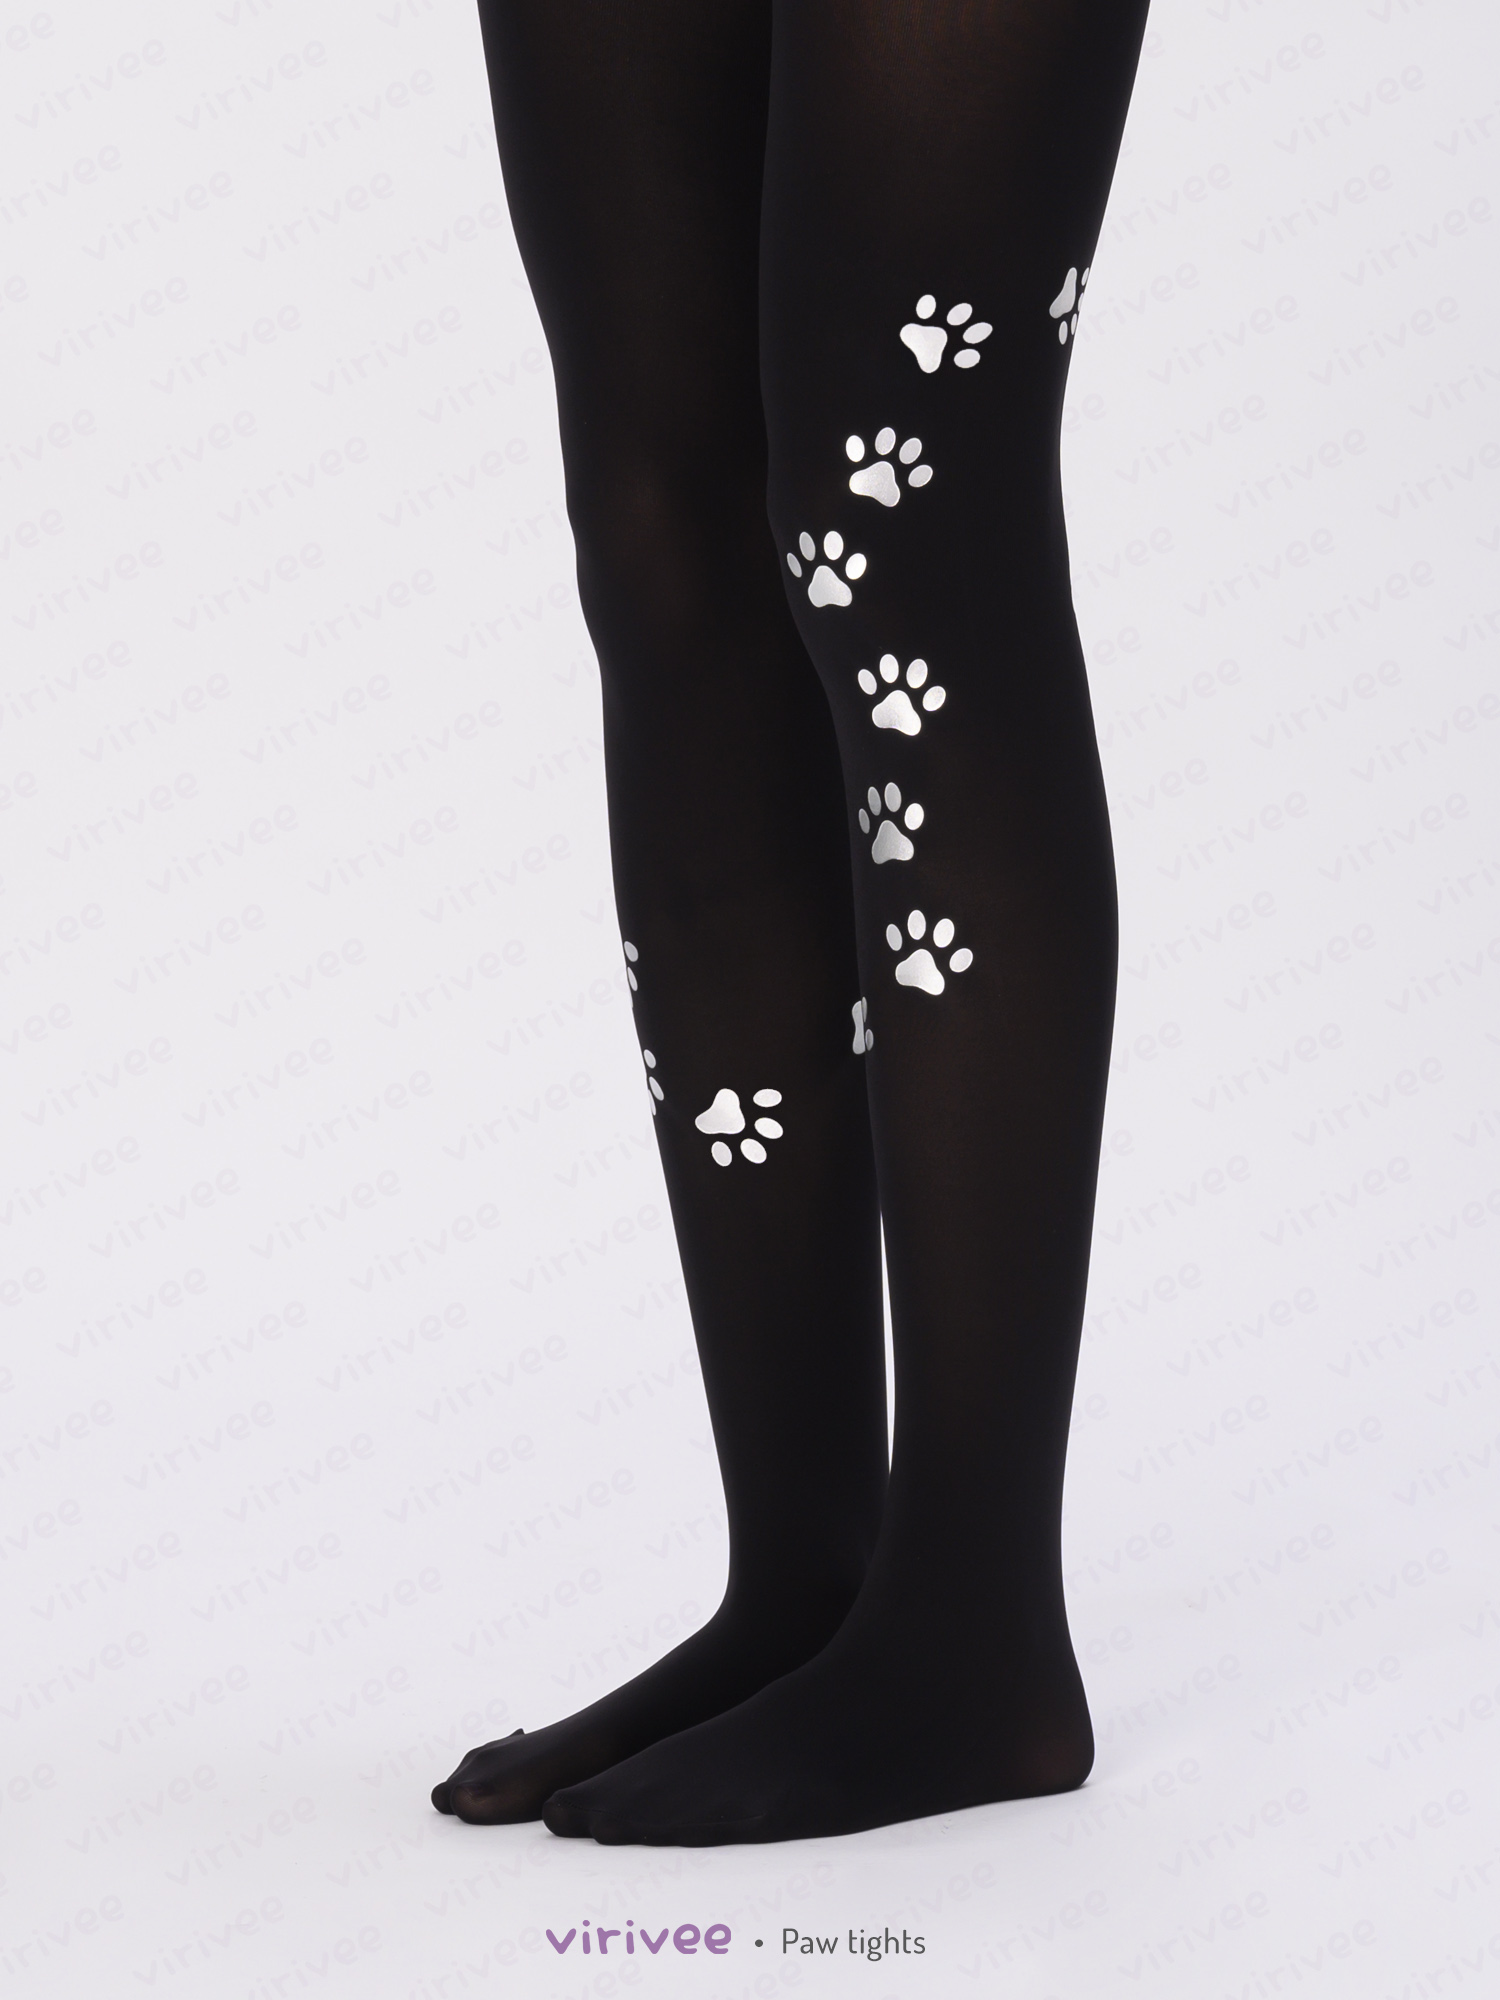 Tights with dog paw print